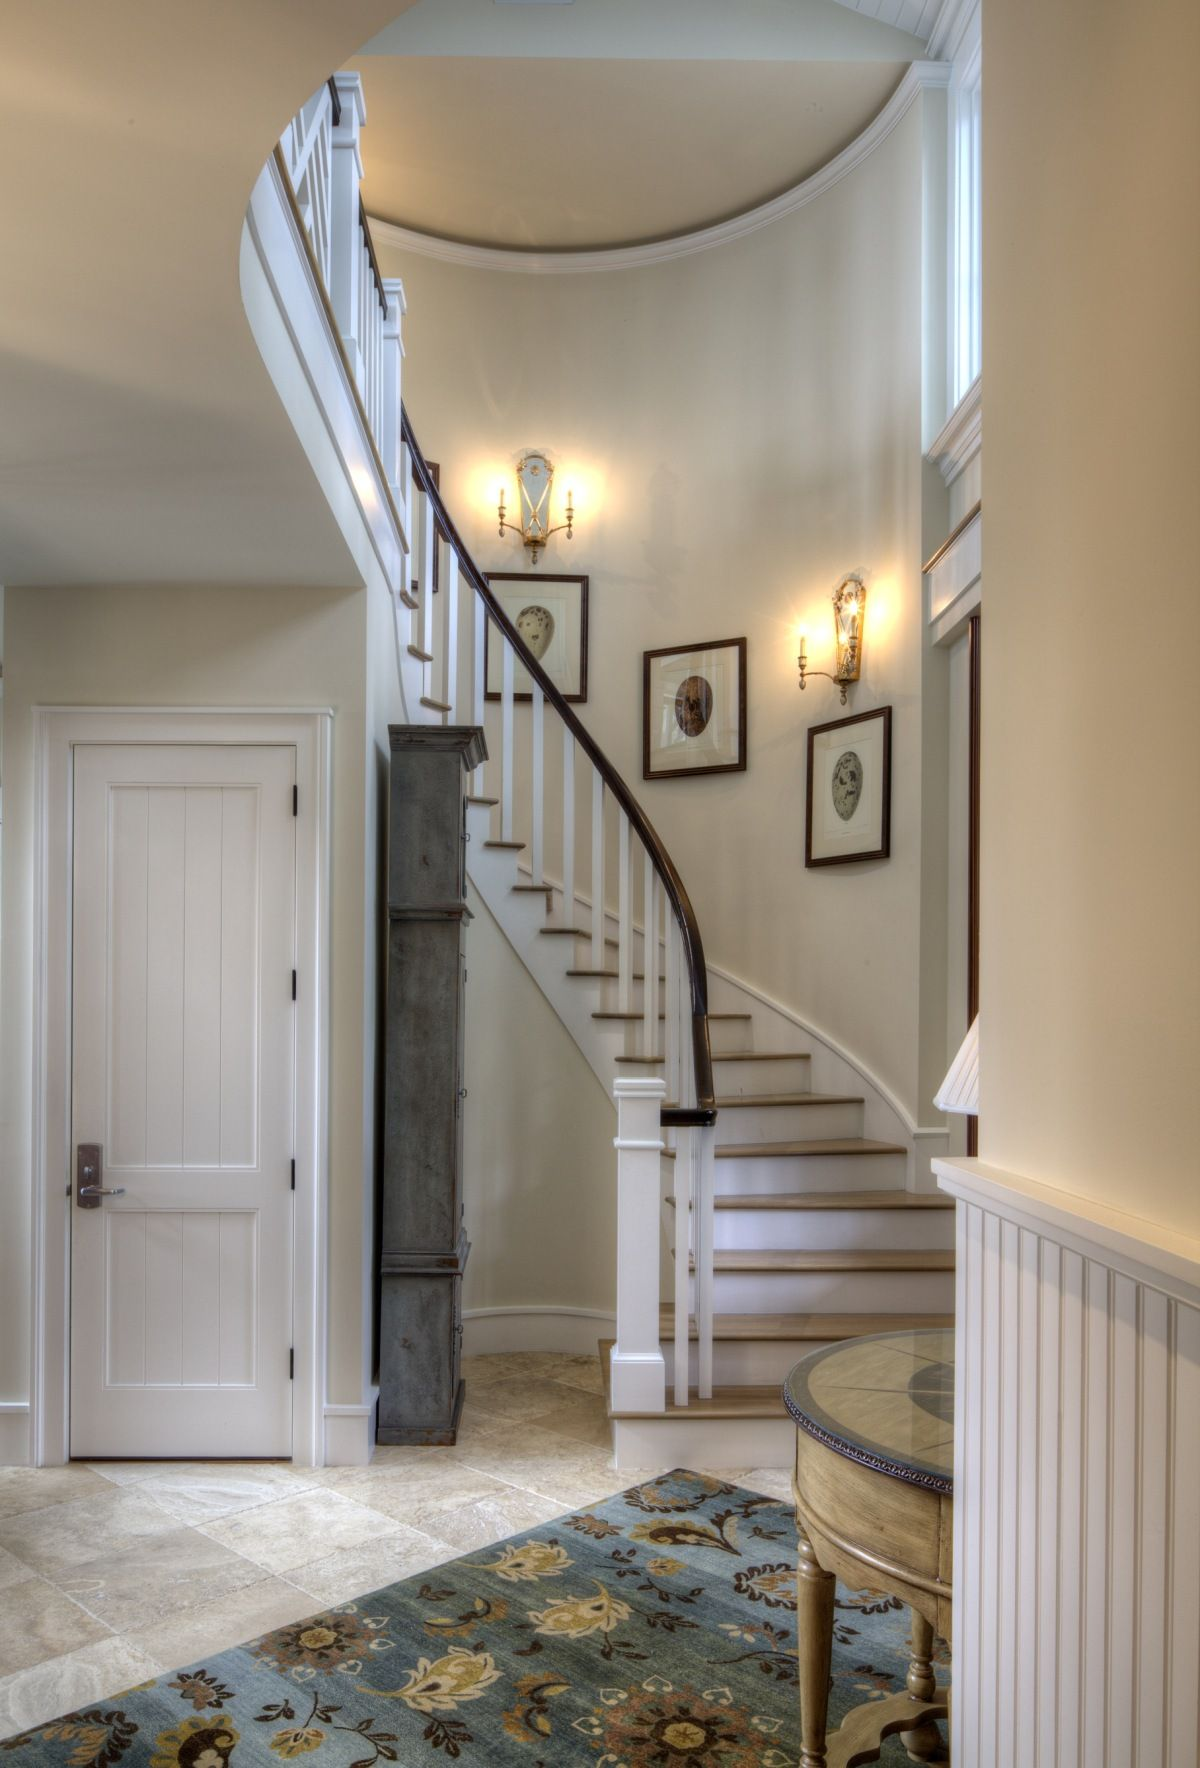 Beach House Foyer Lighting : Beach coastal living stairs foyer entry hallway